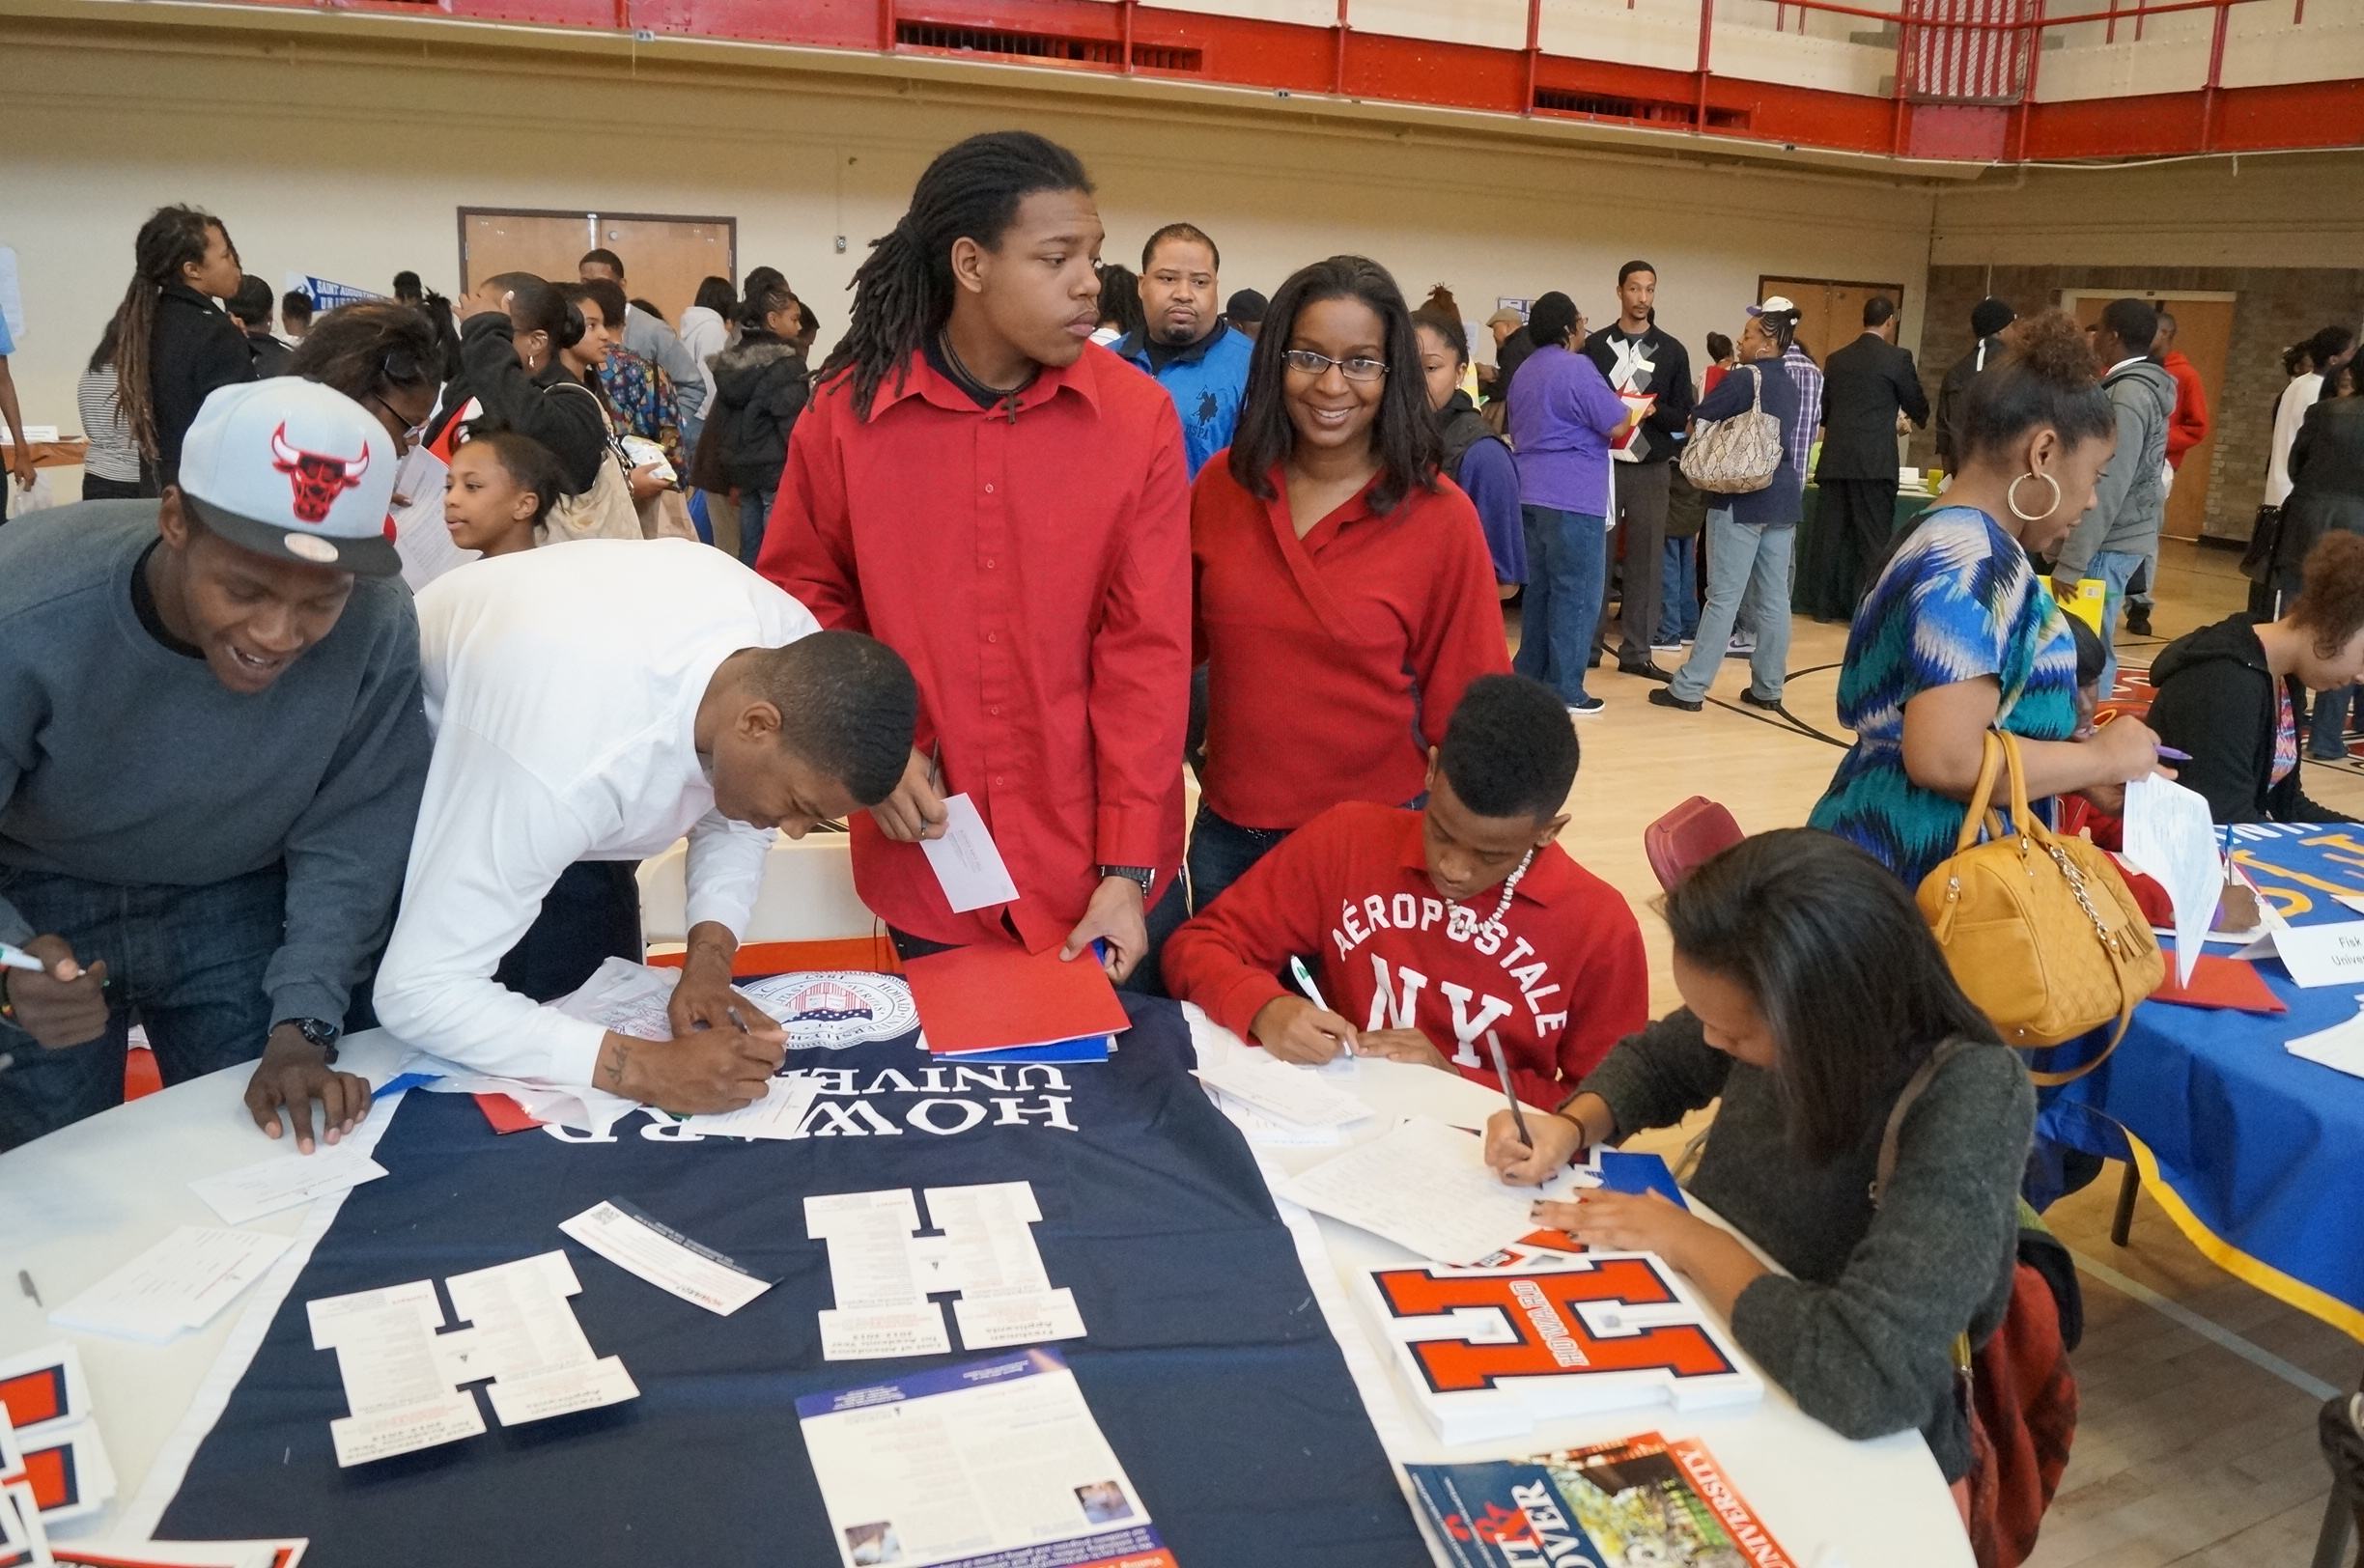 College Fair Participants